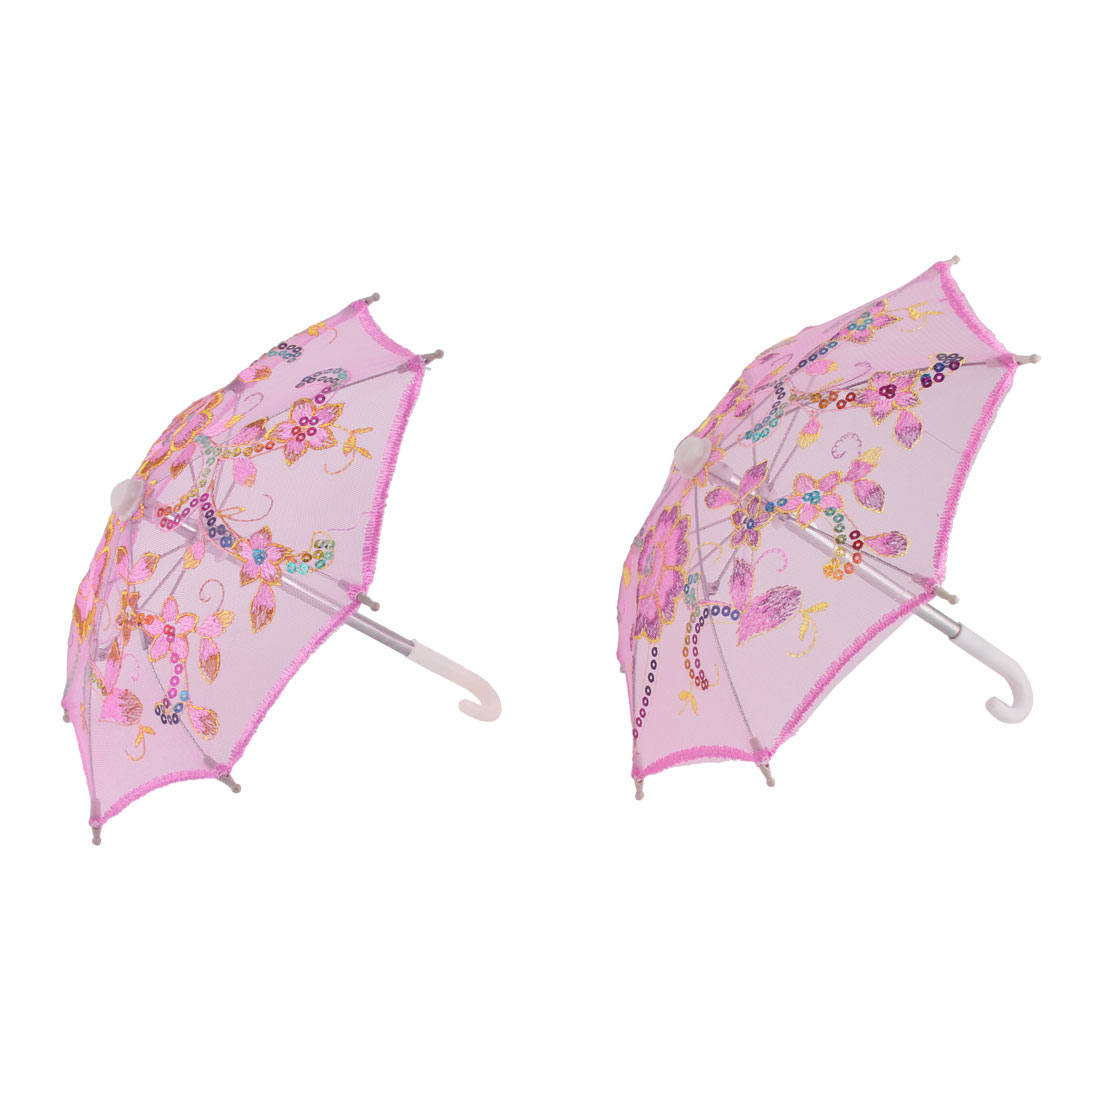 Outdoor Wedding Lace Floral Pattern Sequin Decor Folding Mini Umbrella 2pcs